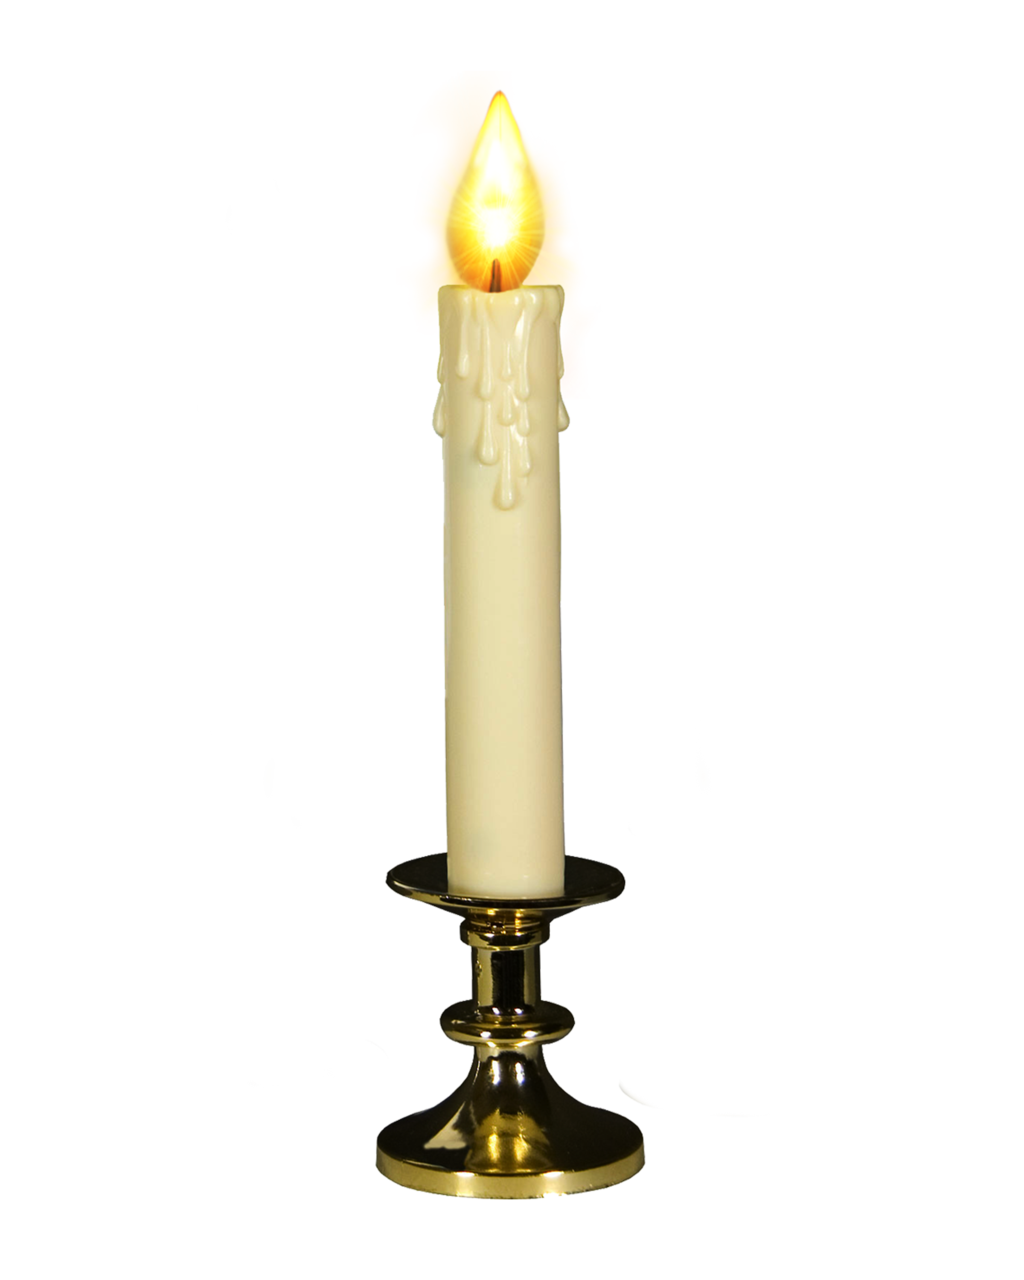 Church Candles Png Image PNG Image - Church Candles HD PNG